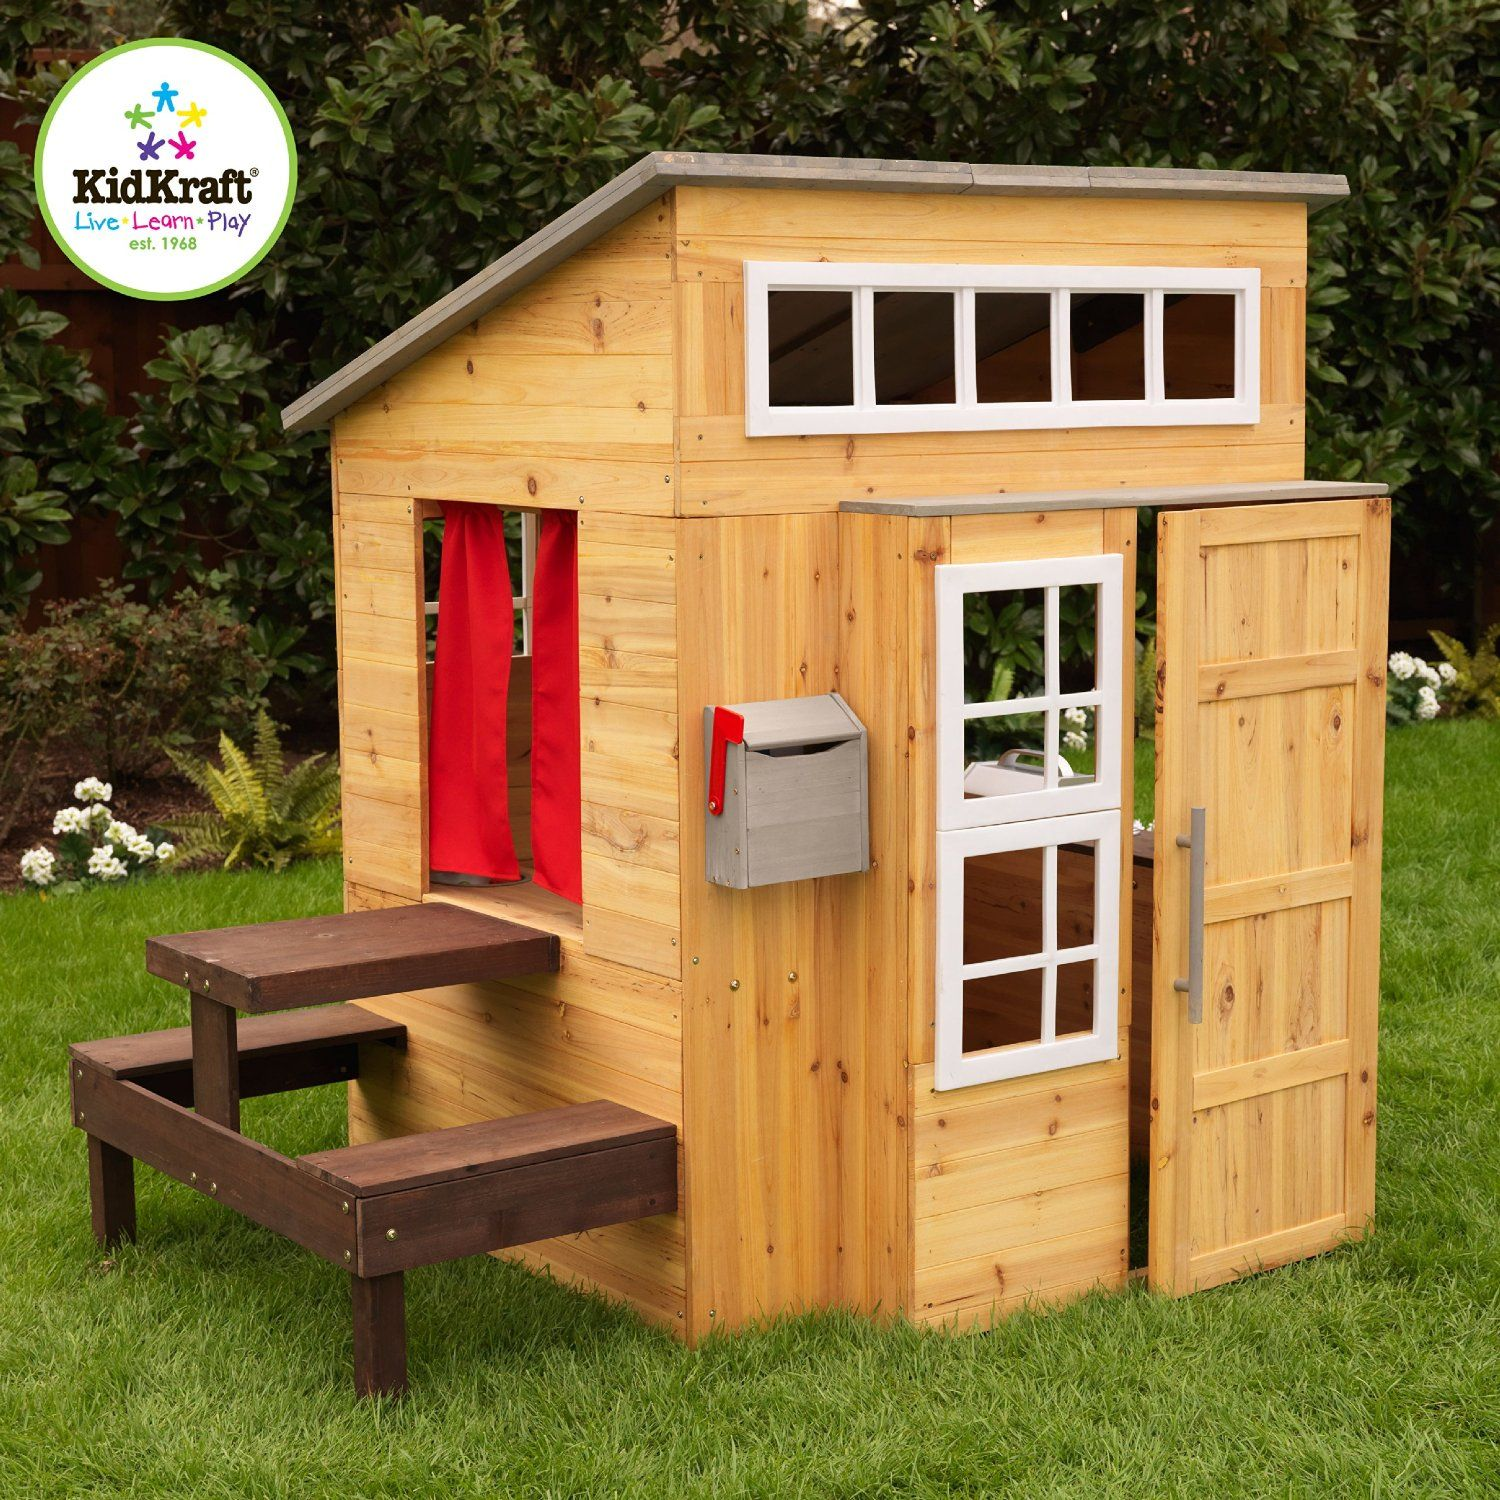 How To Build A Playhouse With Wooden Pallets Step By Step